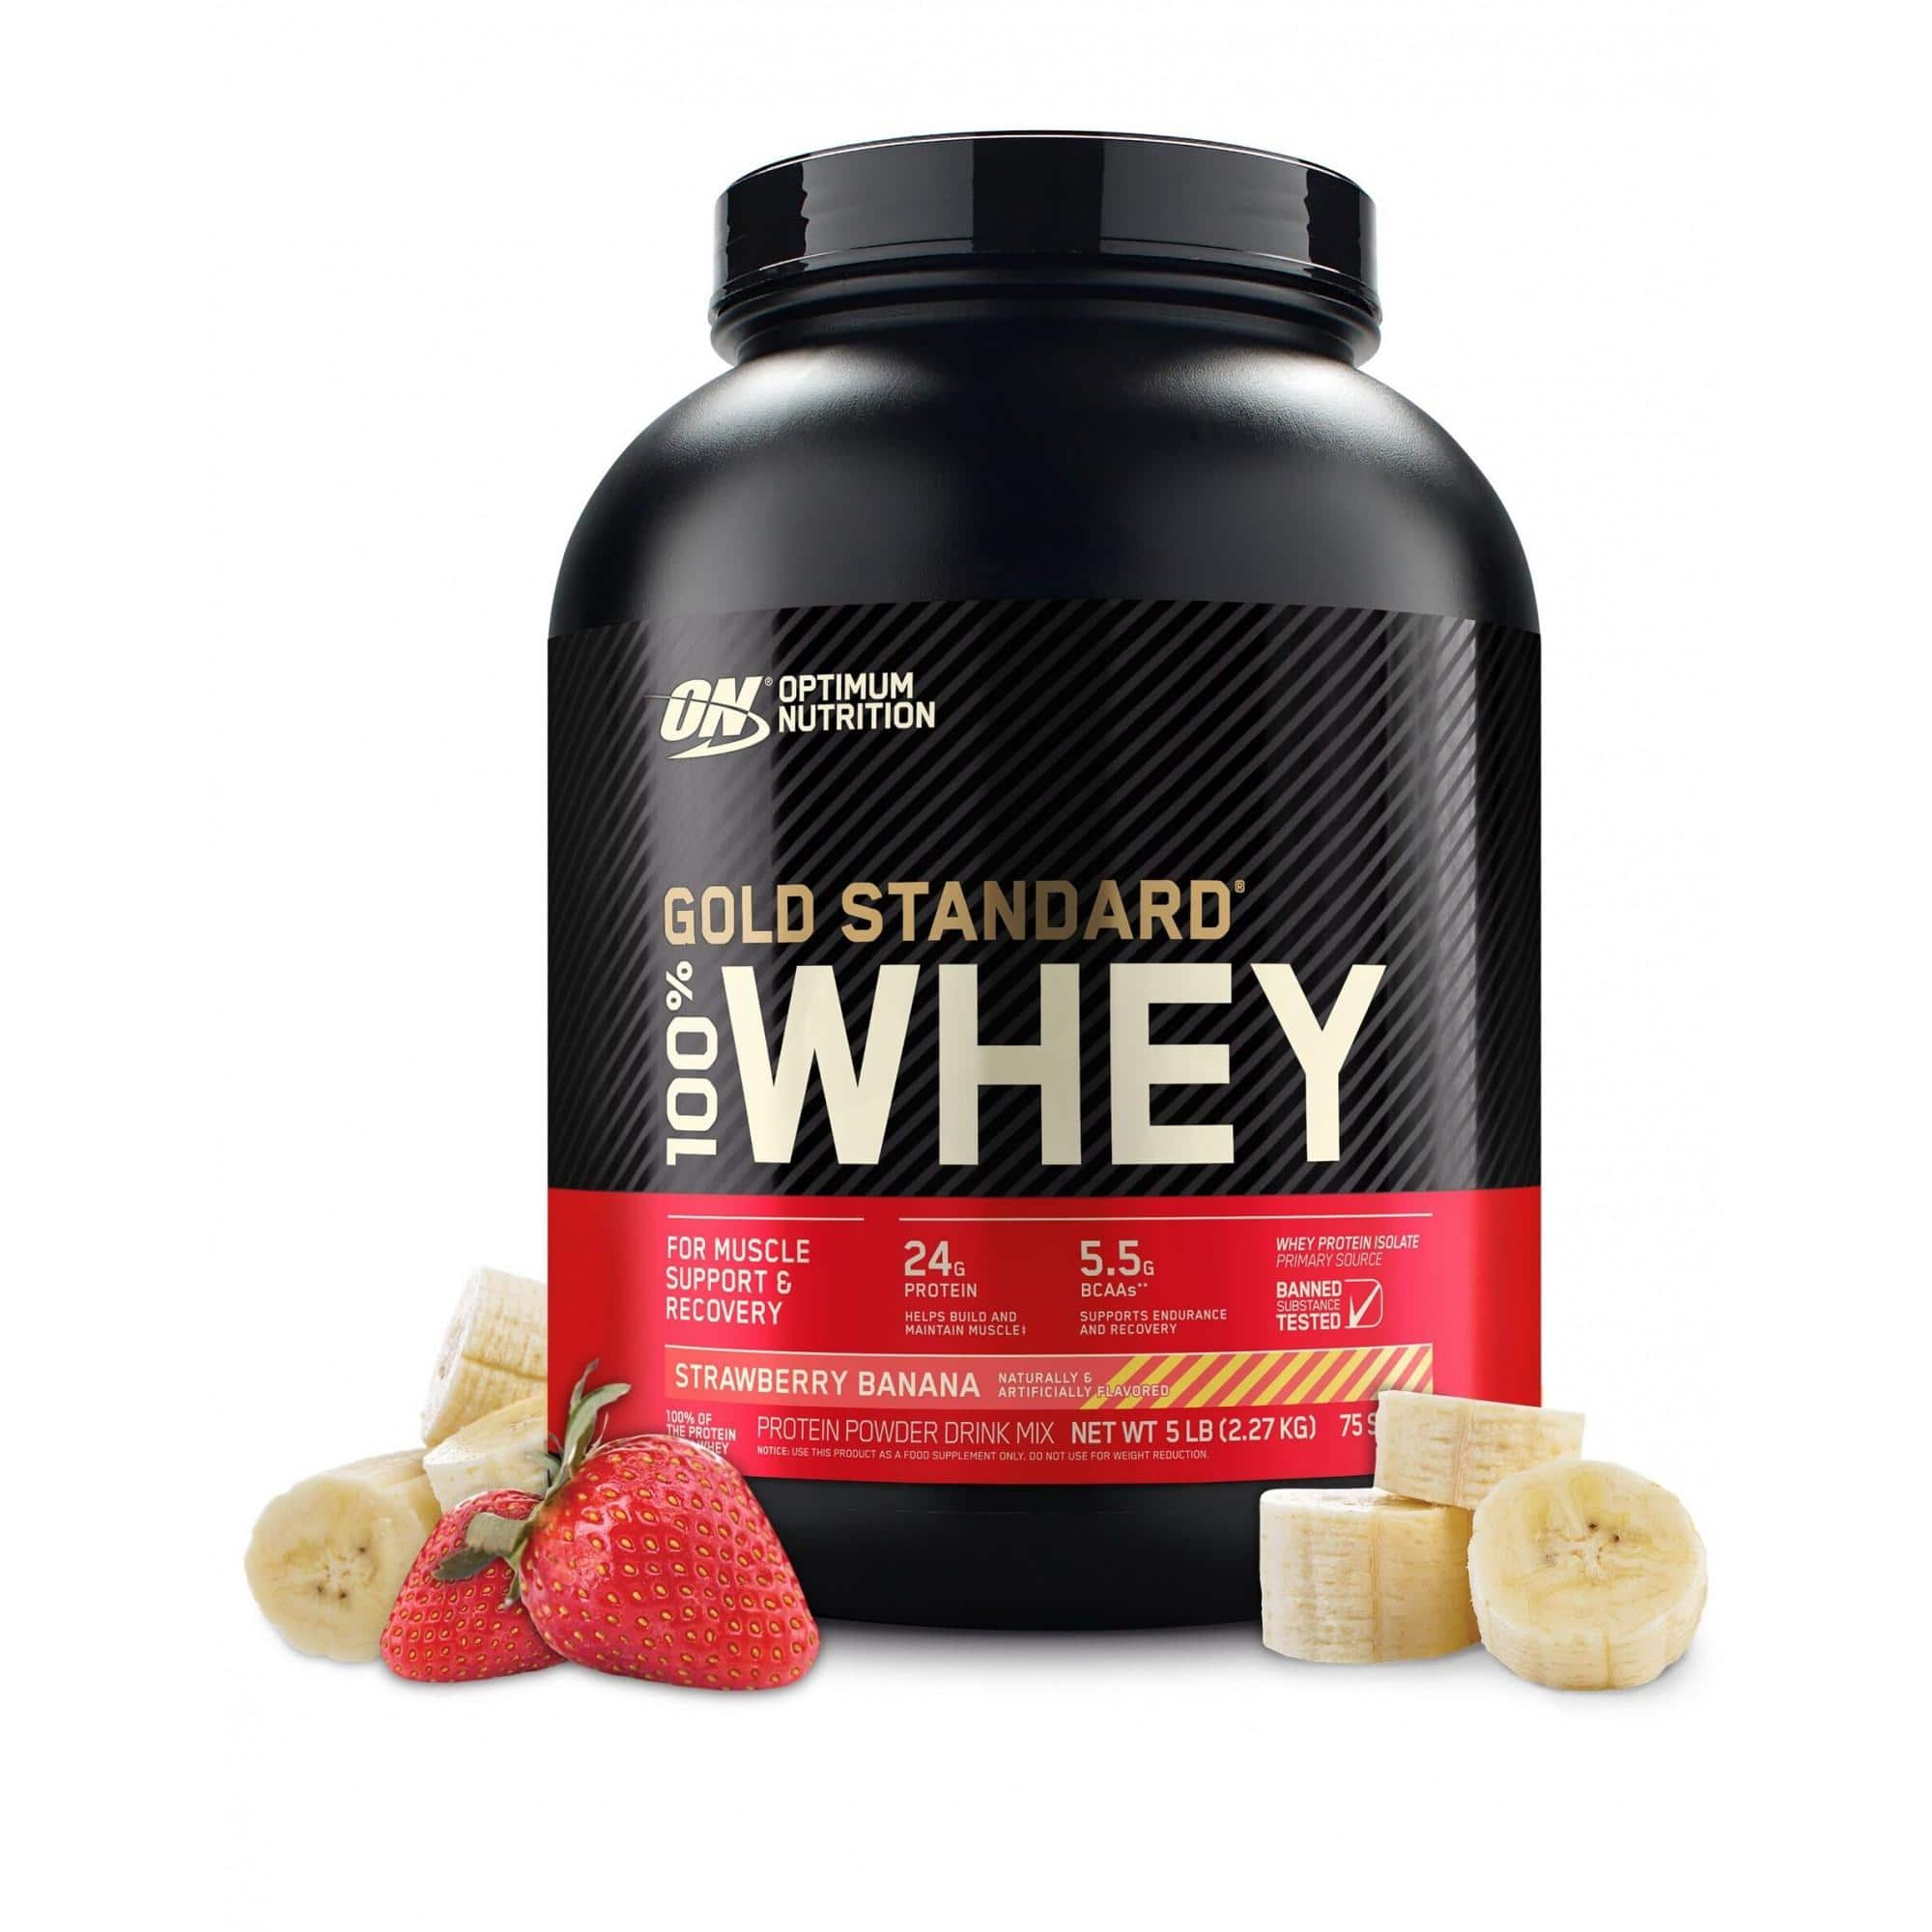 5 lb Optimum Nutrition Gold Standard 100% Whey Protein Powder, Strawberry Banana, $38.41, free shipping, Walmart